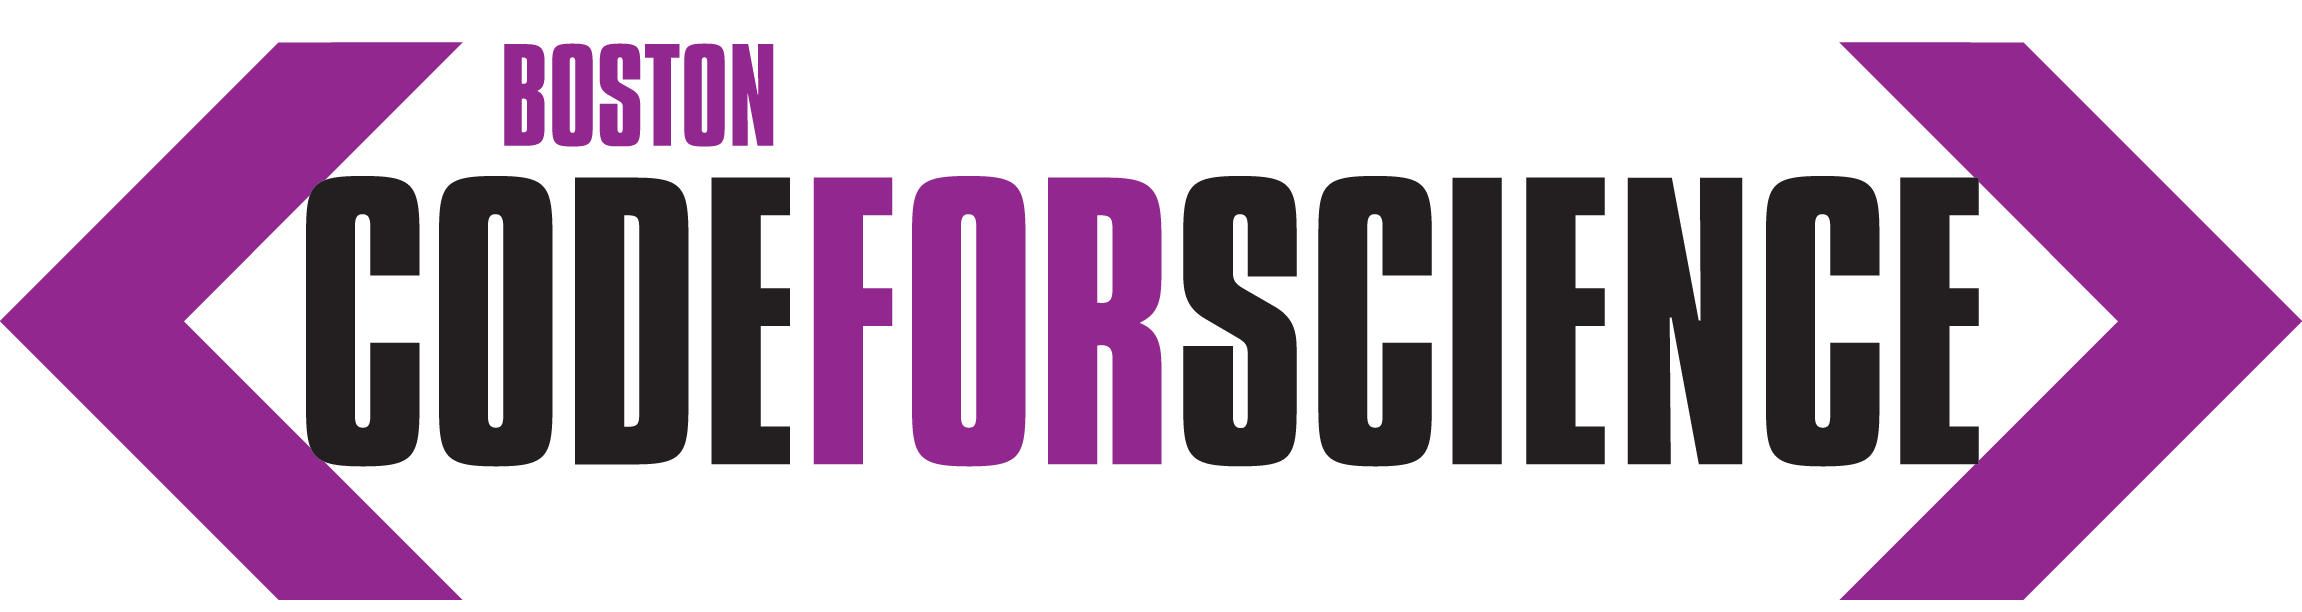 Code for science Logo